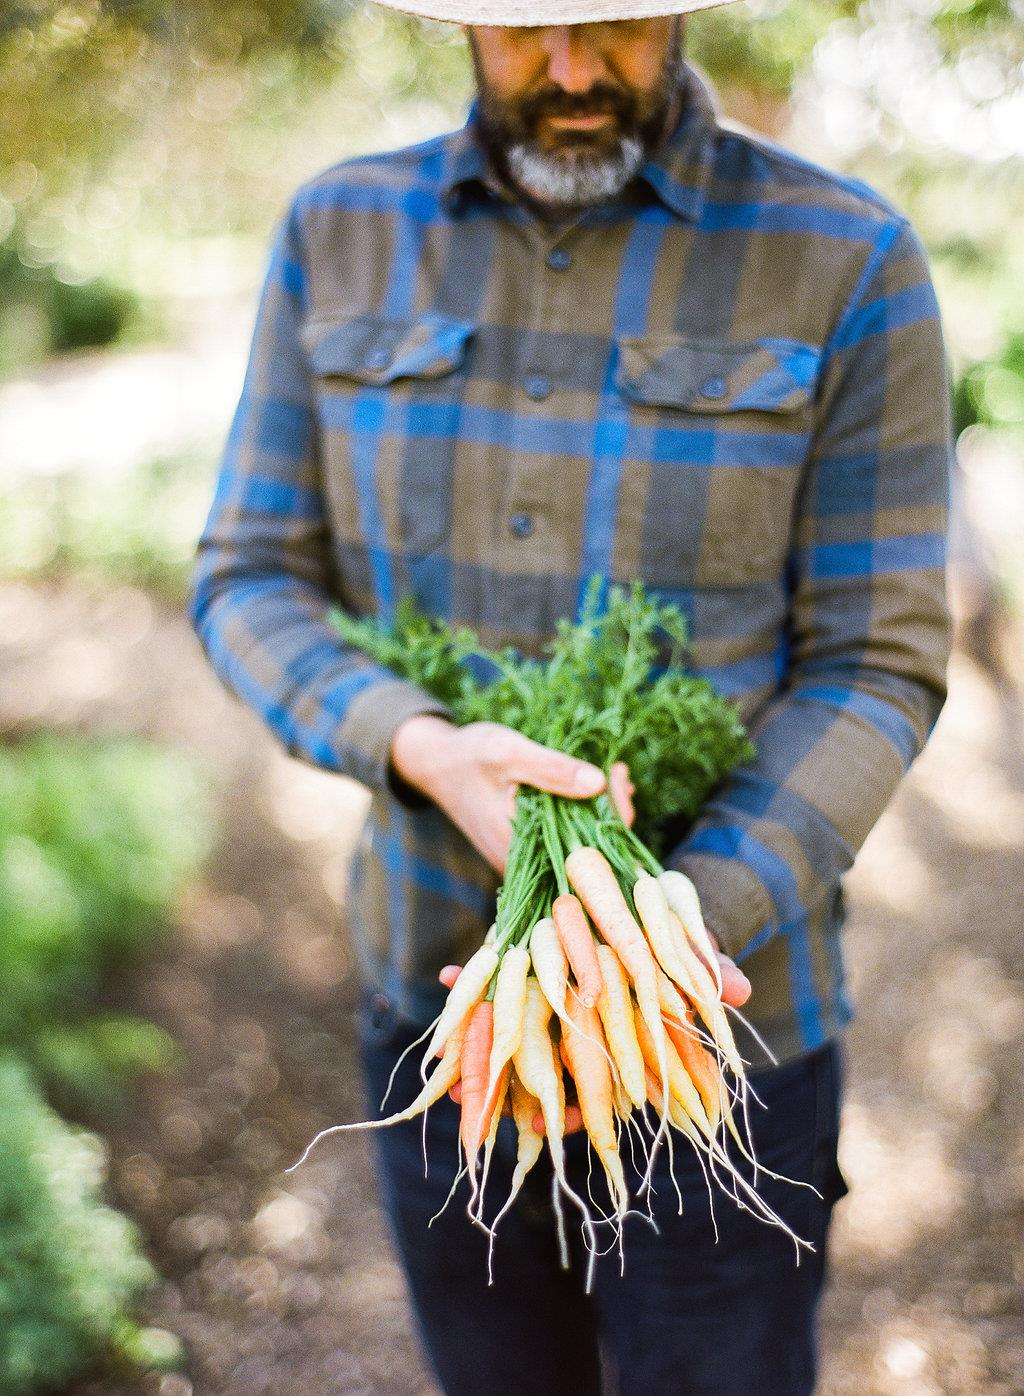 Farmer T with just-harvested carrots